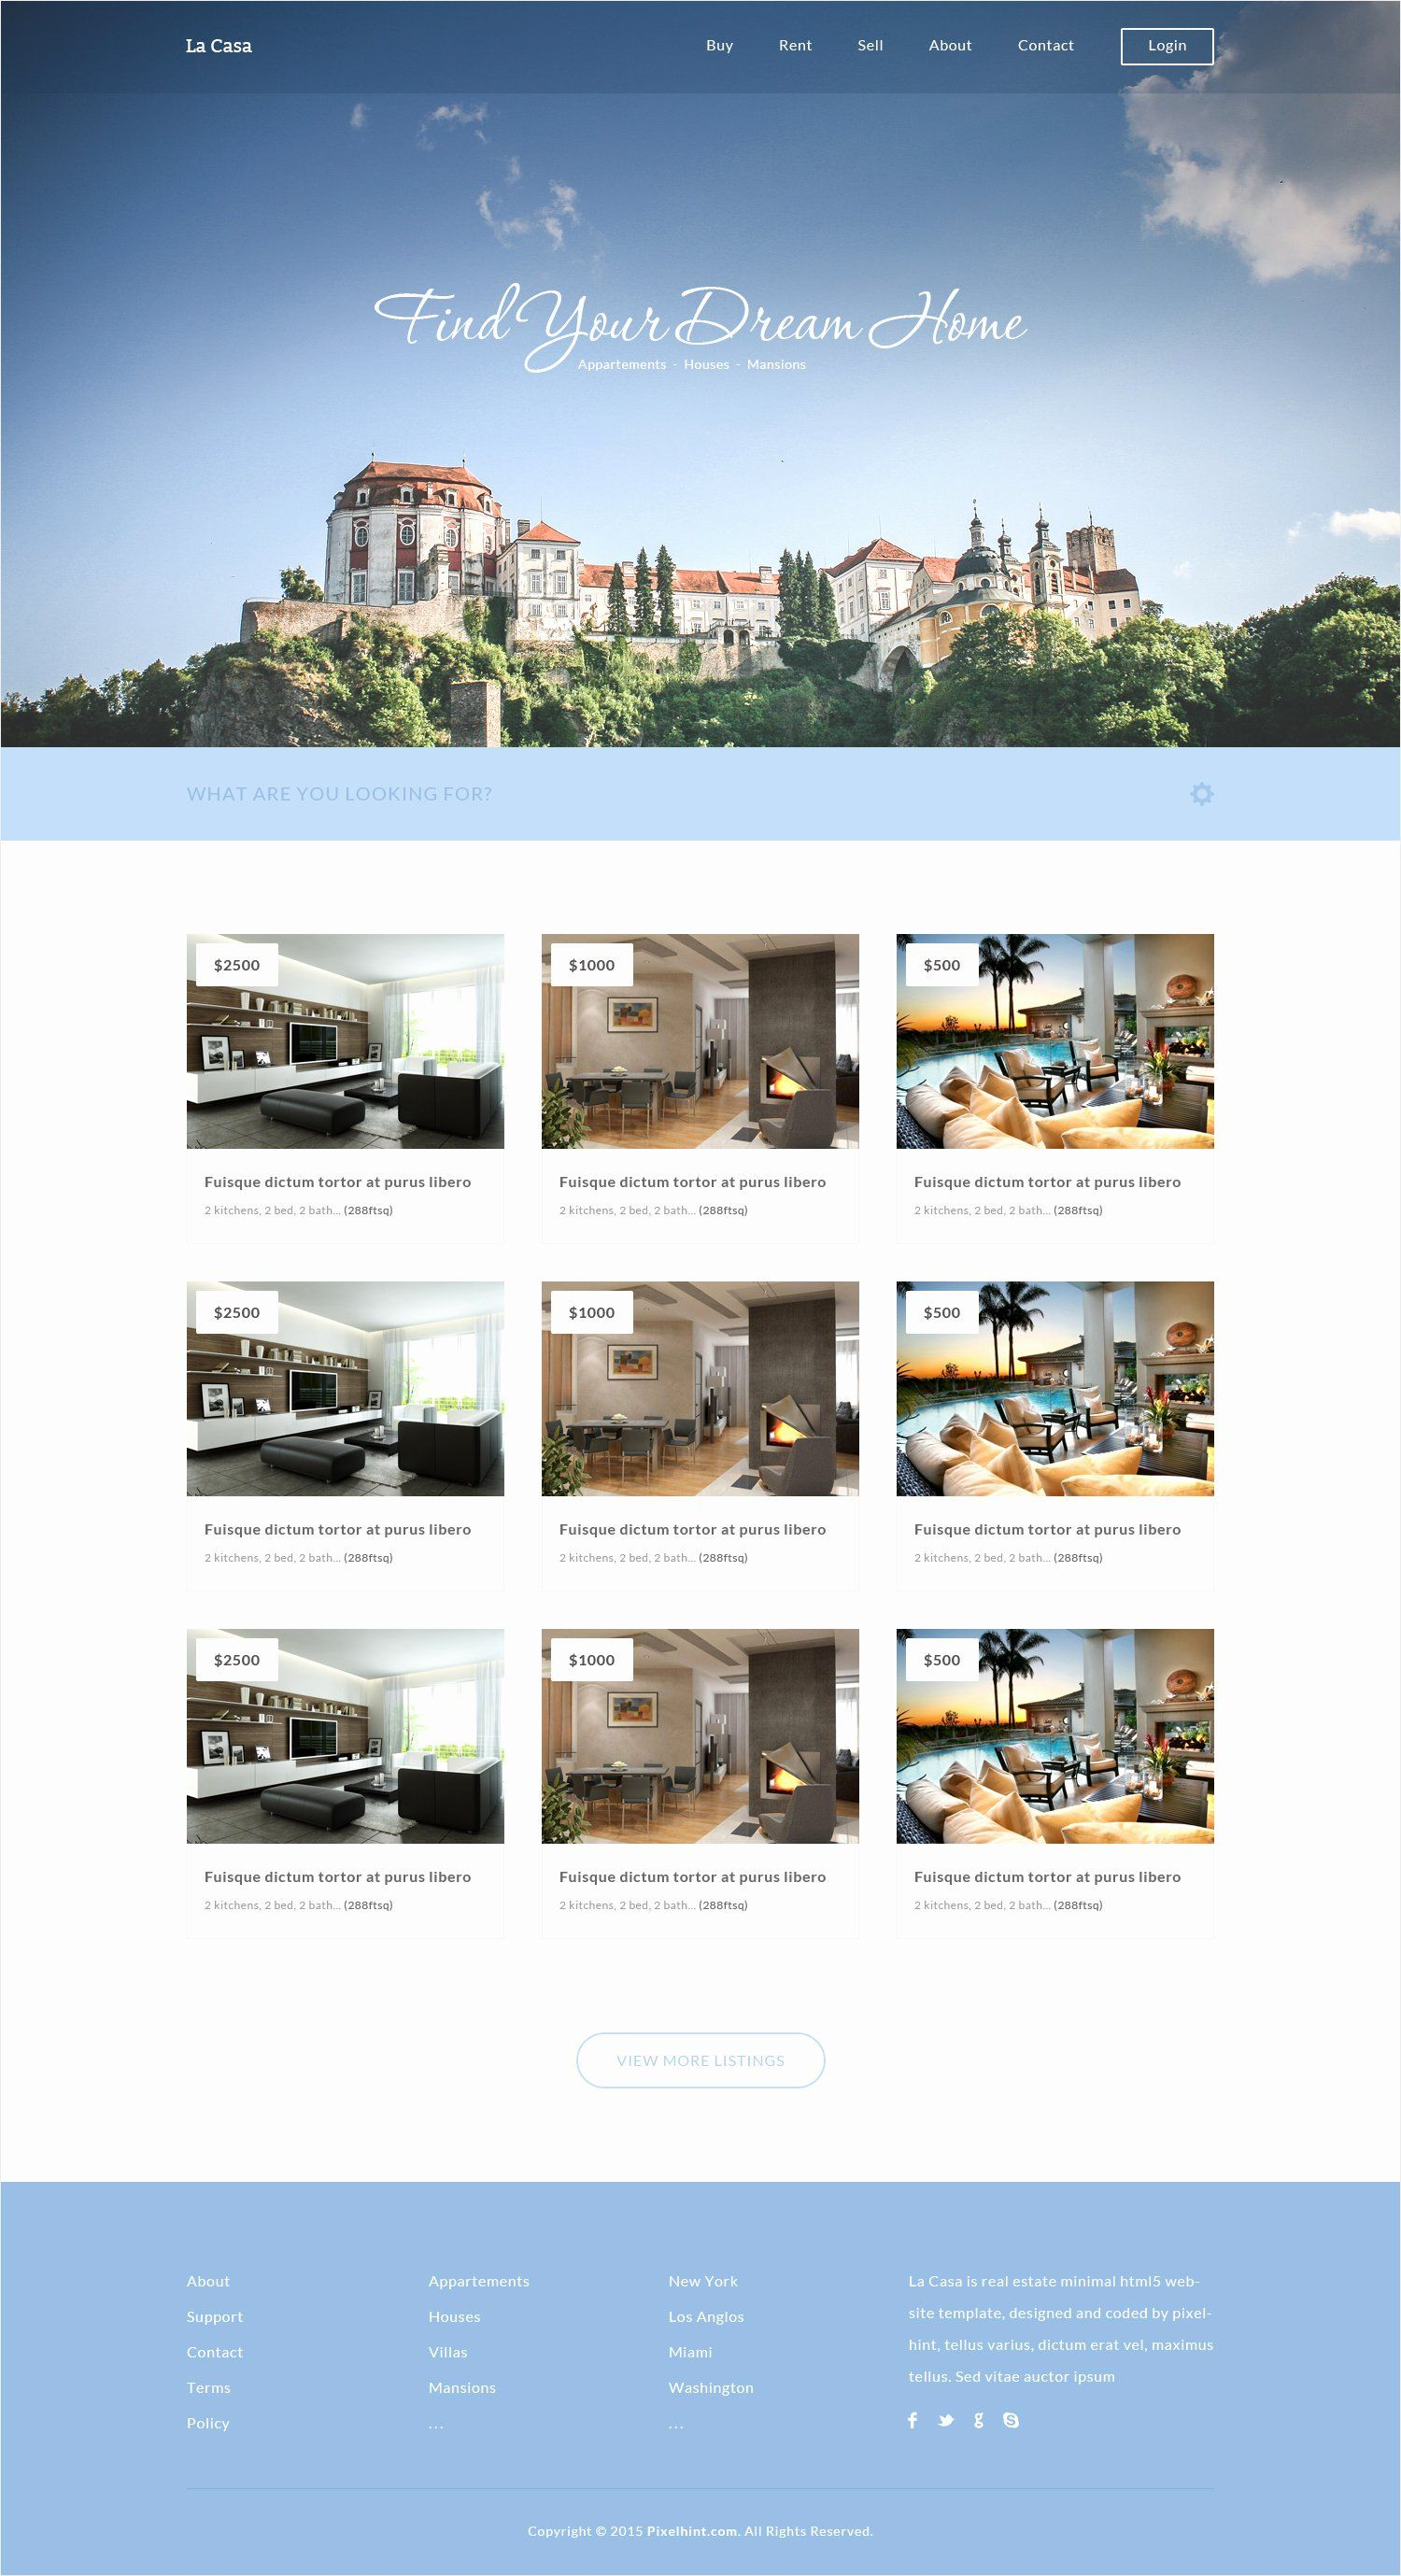 Free Real Estate Templates Unique La Casa Free Real Estate Fully Responsive Html5 Css3 Real Estate Templates Real Estate Website Templates Real Estate